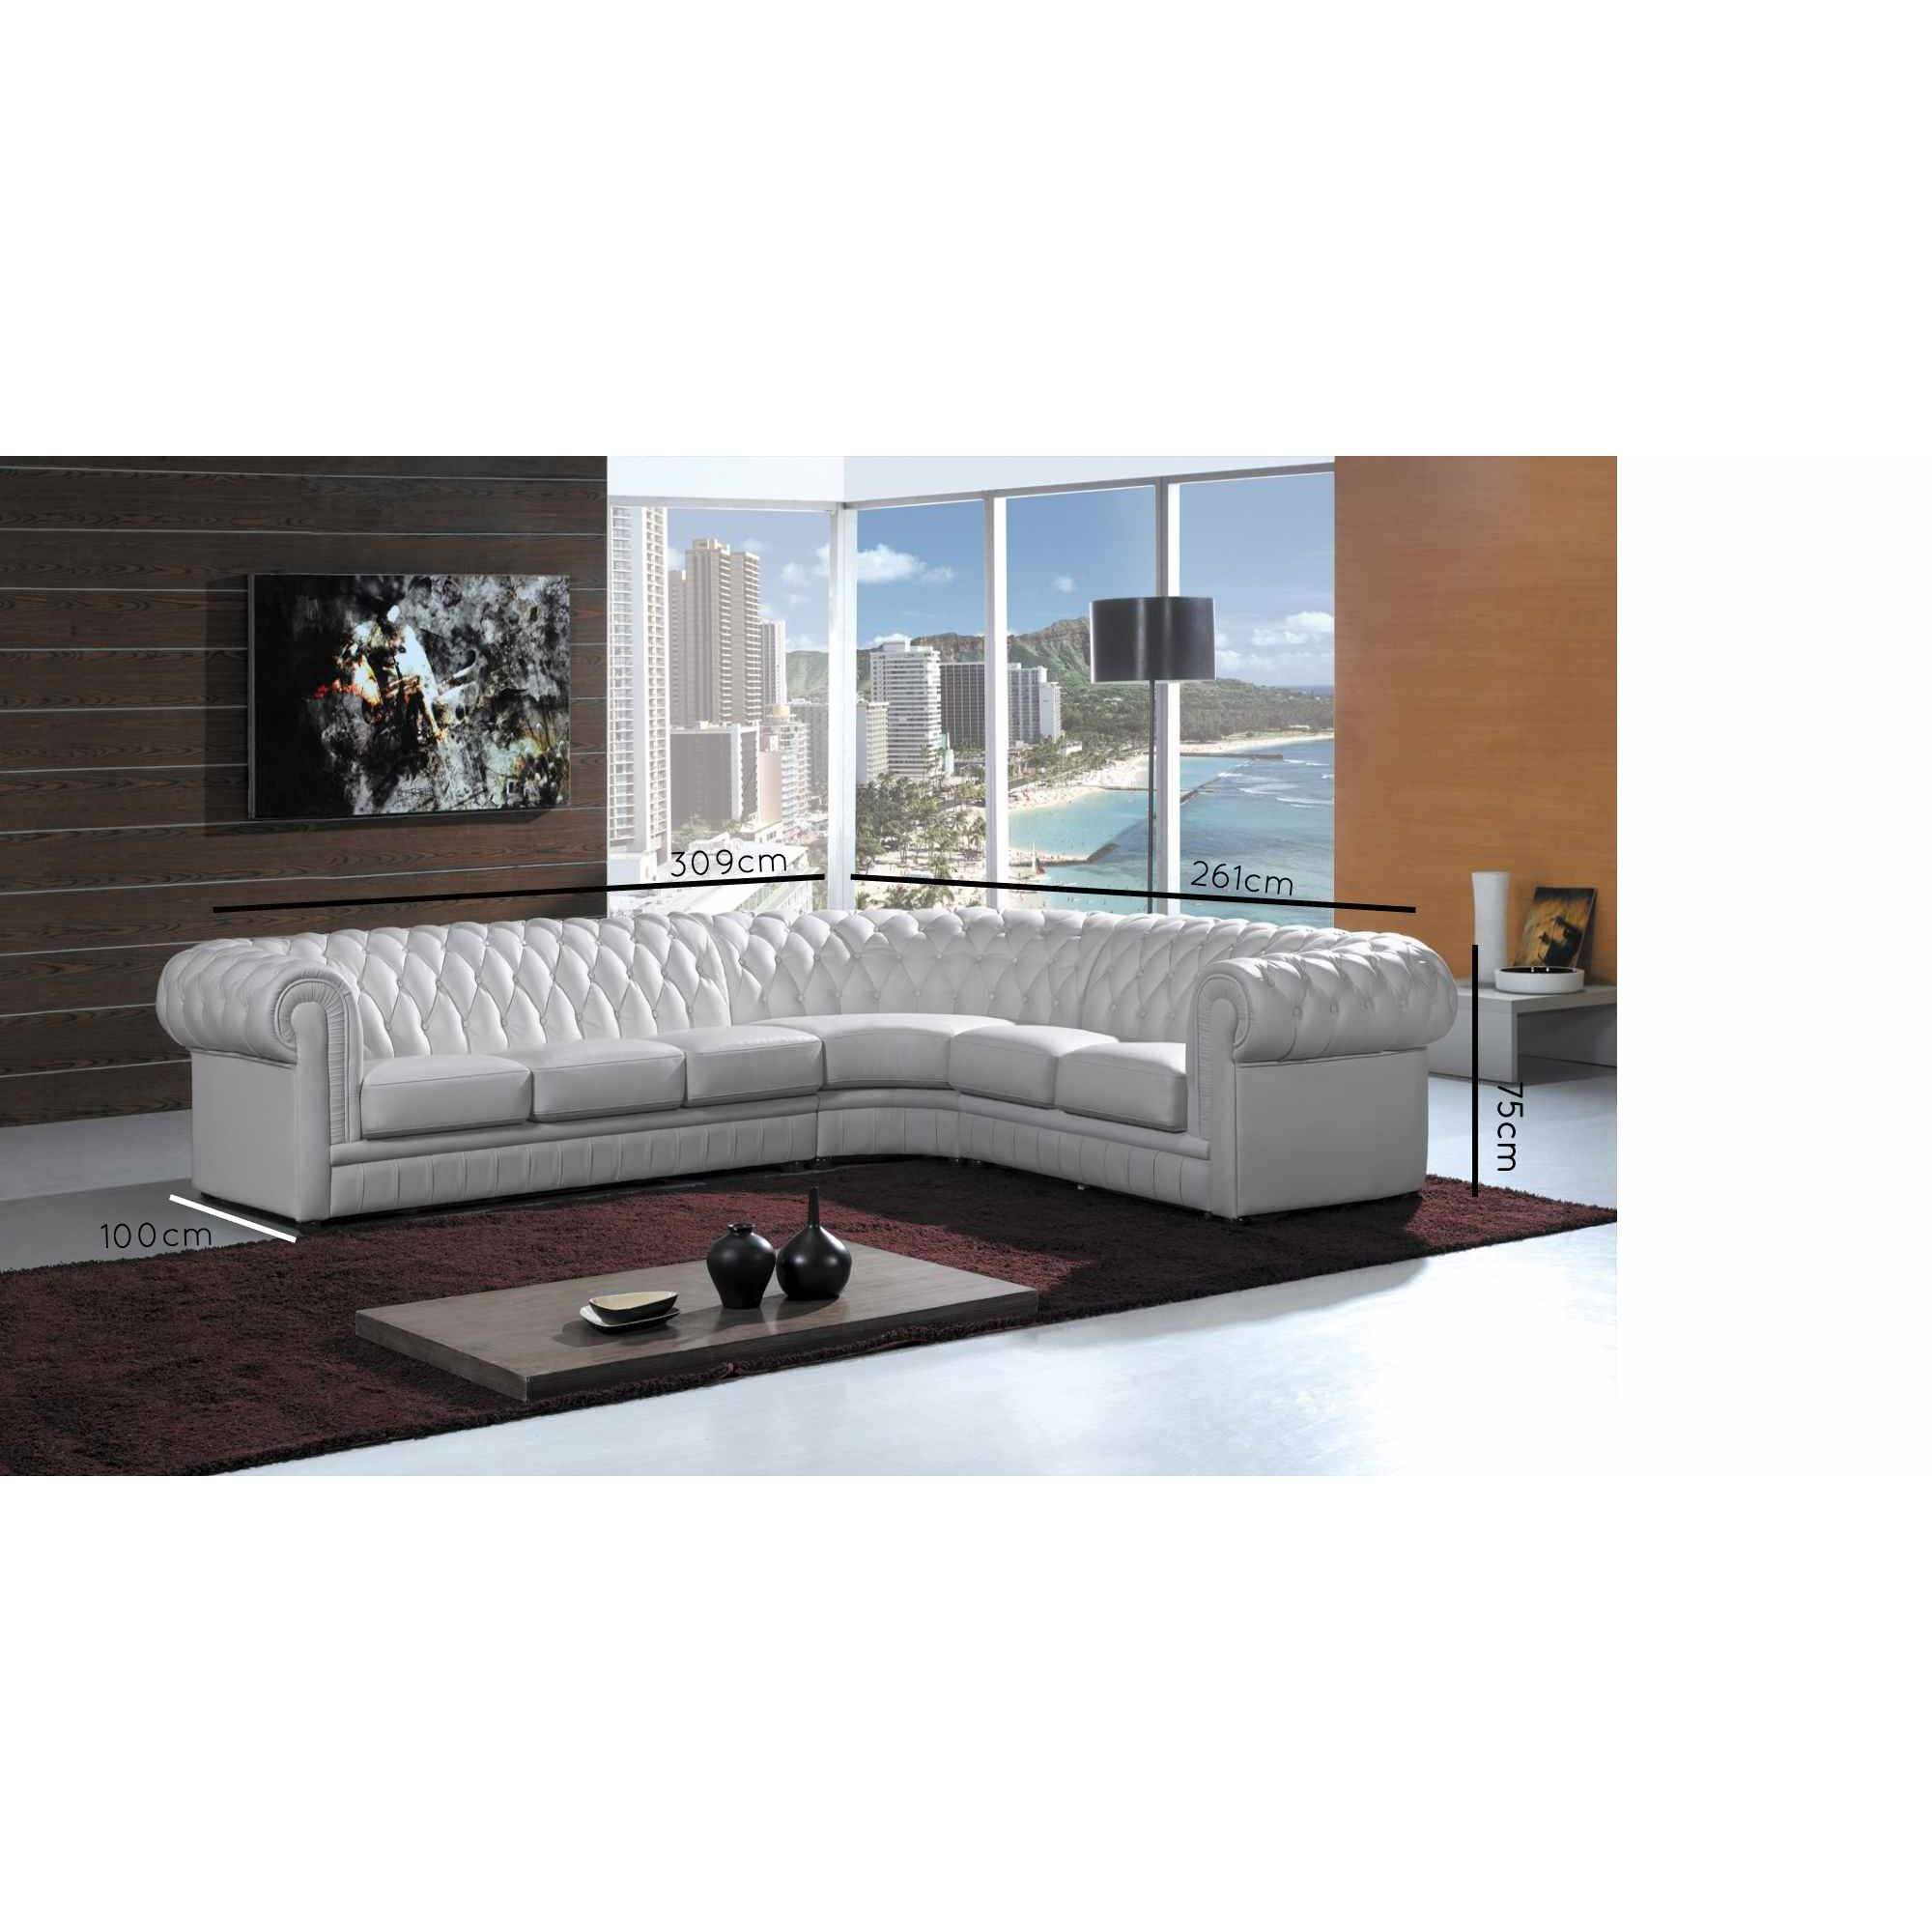 Deco Salon Chesterfield Deco In Paris Grand Canape D Angle Capitonne Blanc